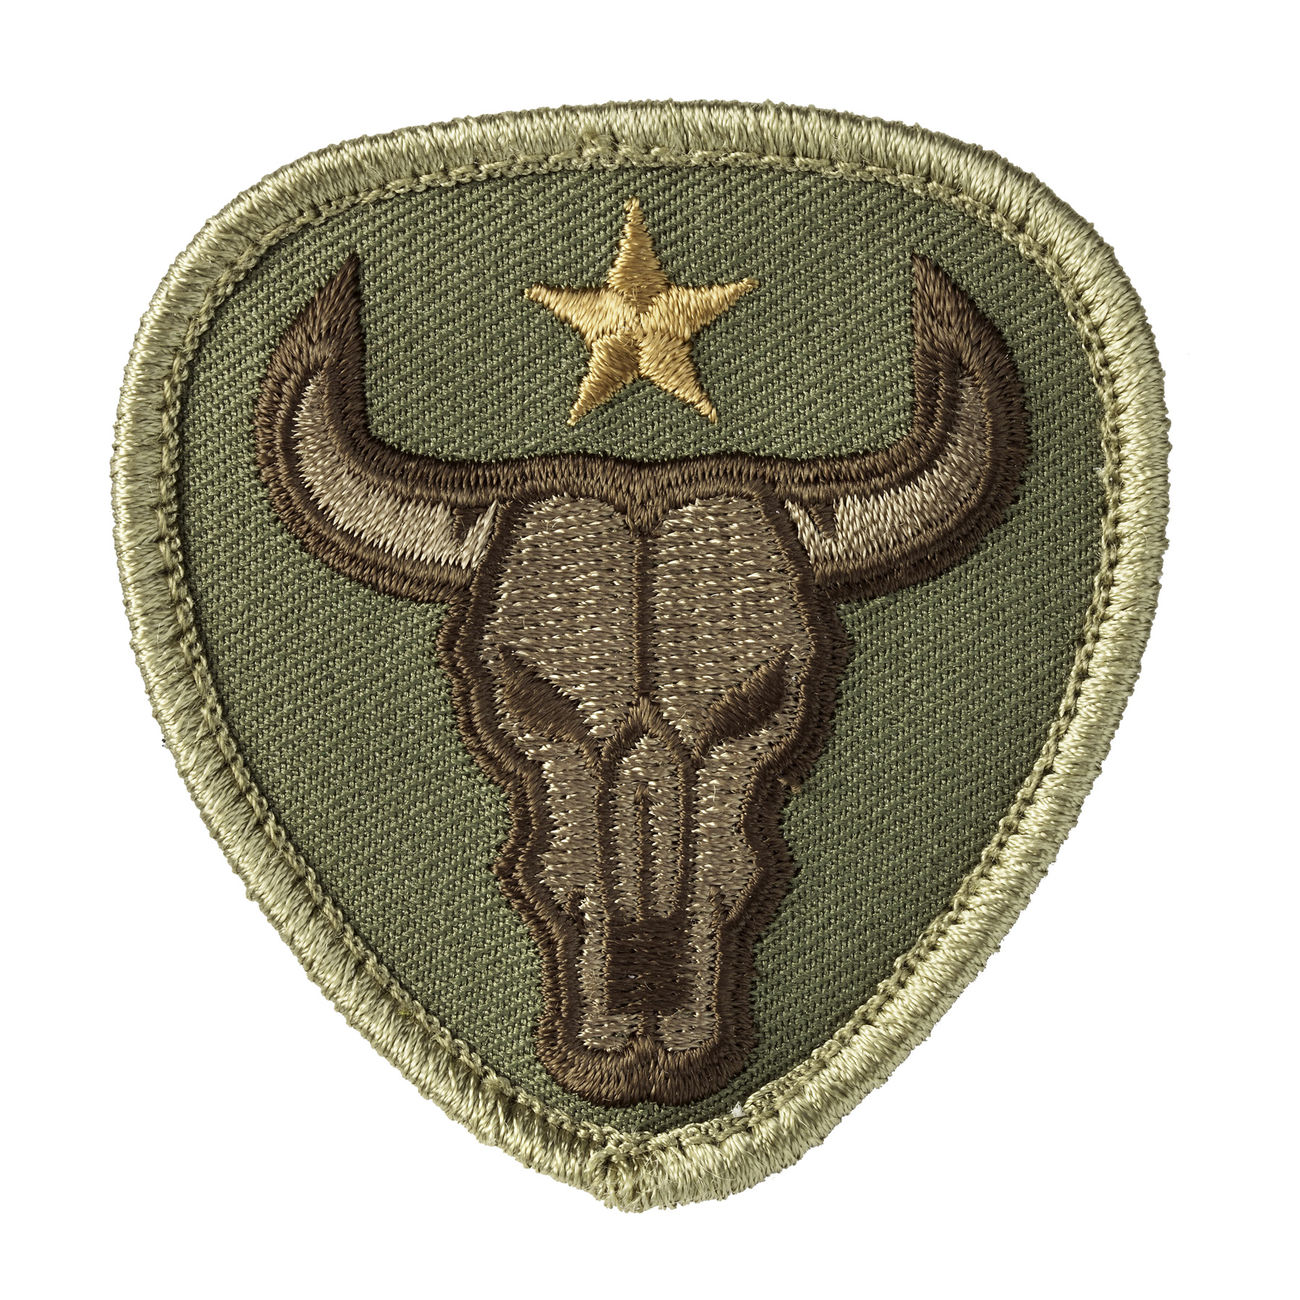 Mil-Spec Monkey Patch Bull Skull multicam 0